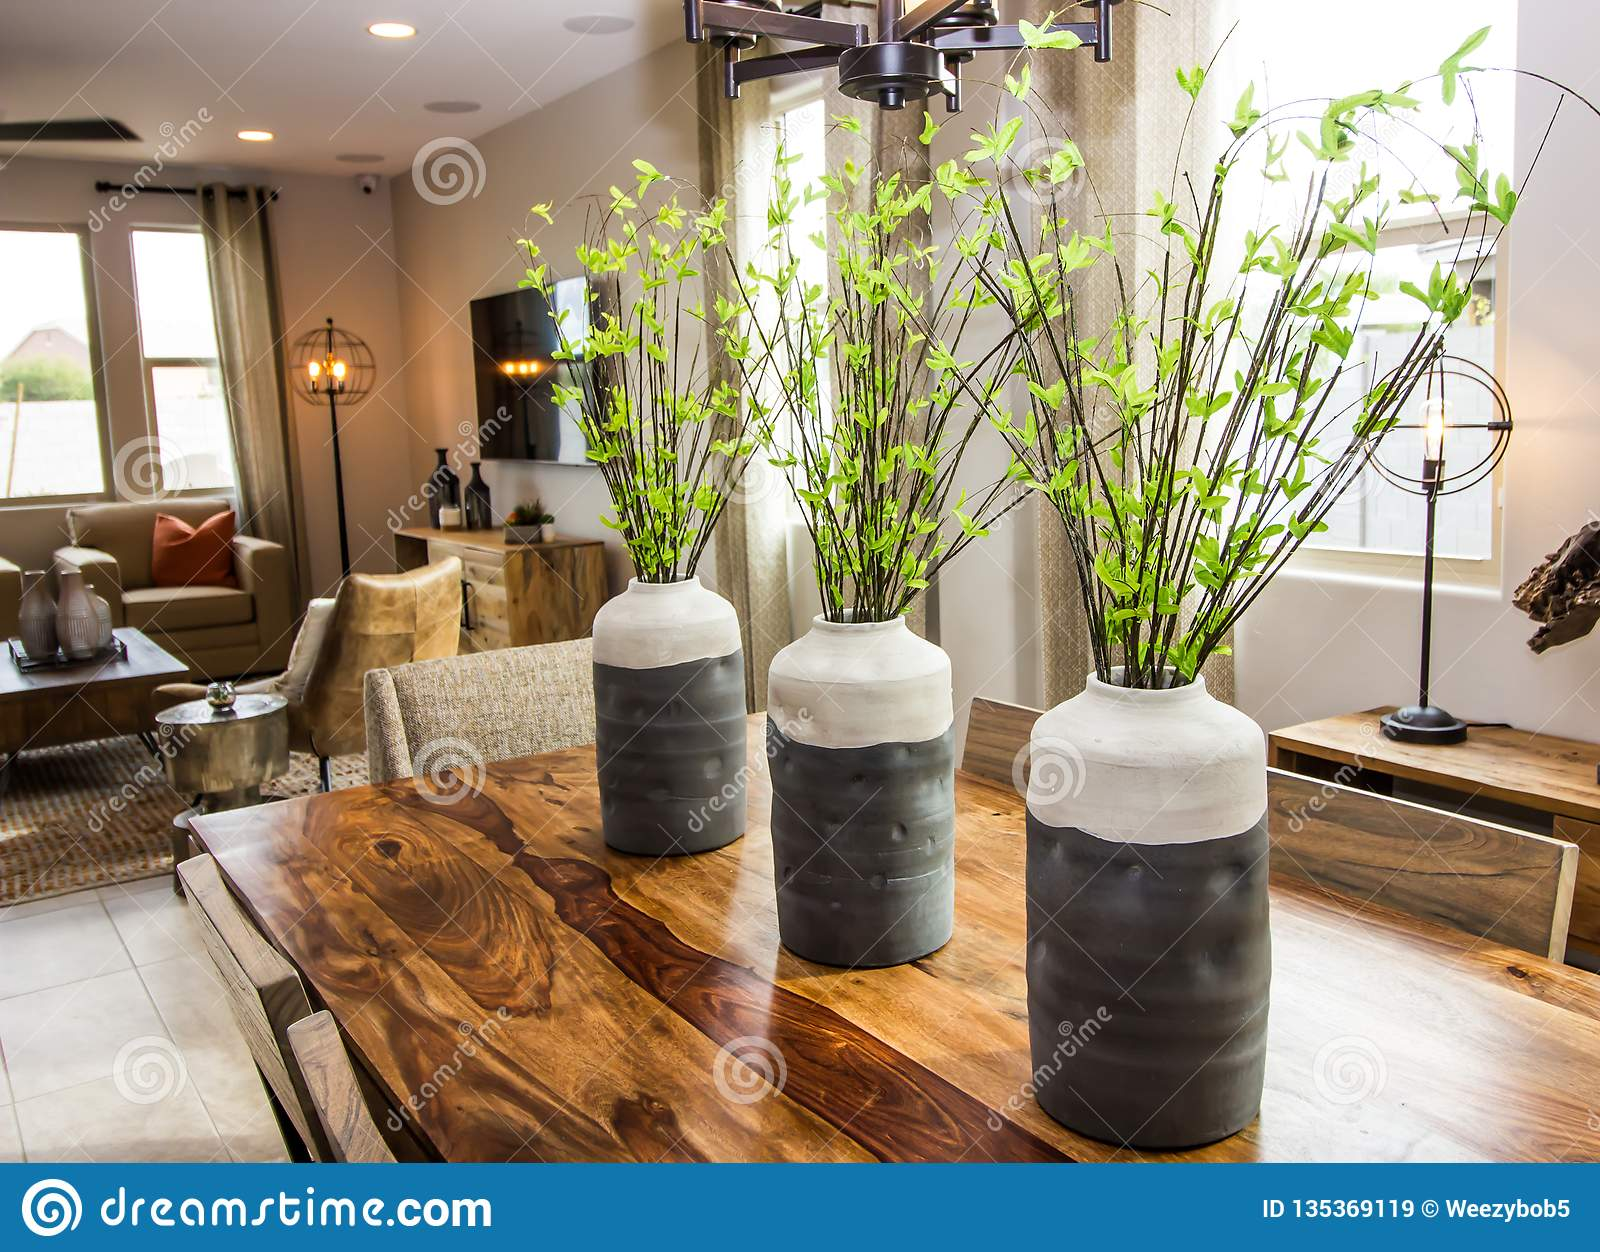 Three Vases As Centerpieces On Wooden Table Stock Image Image Of Pillow Walls 135369119